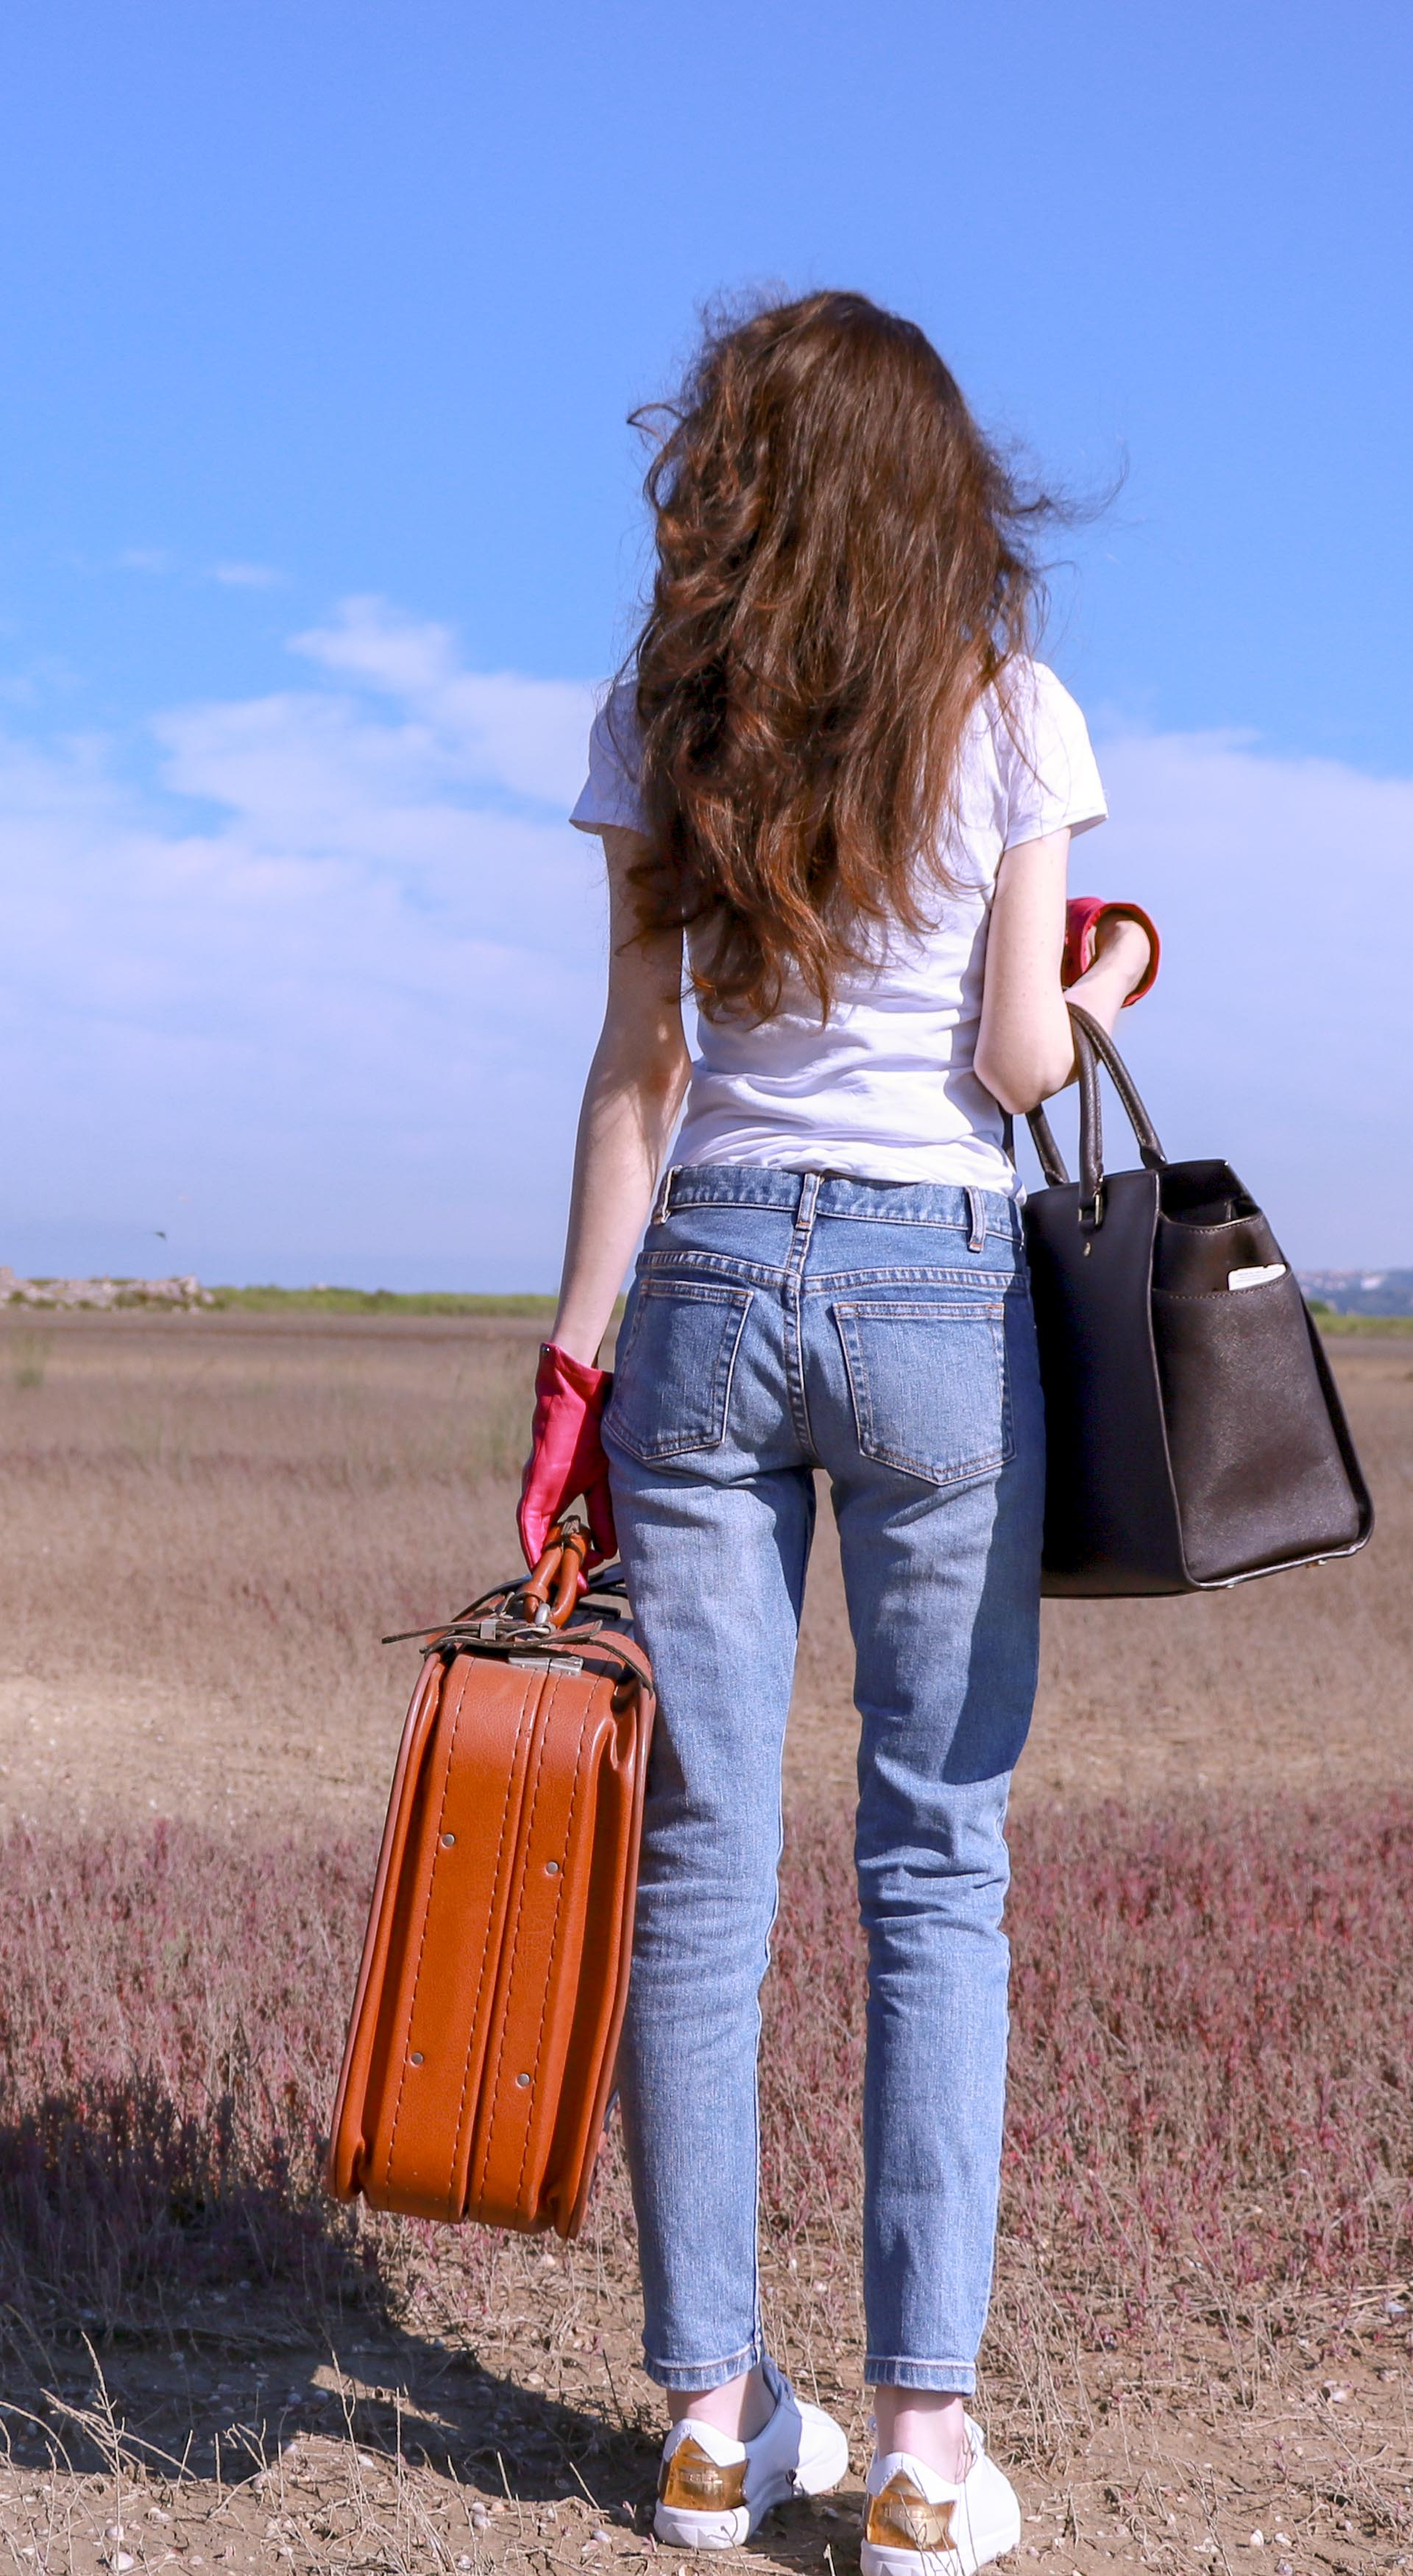 Popular fashion influencer Veronika Lipar of Brunette from Wall Street dressed in a.p.c. bleach denim jeans Diesel white sneakers white T-shirt pink leather gloves carrying Michael Kors sachets bag a vintage suitcase standing in the middle of nowhere